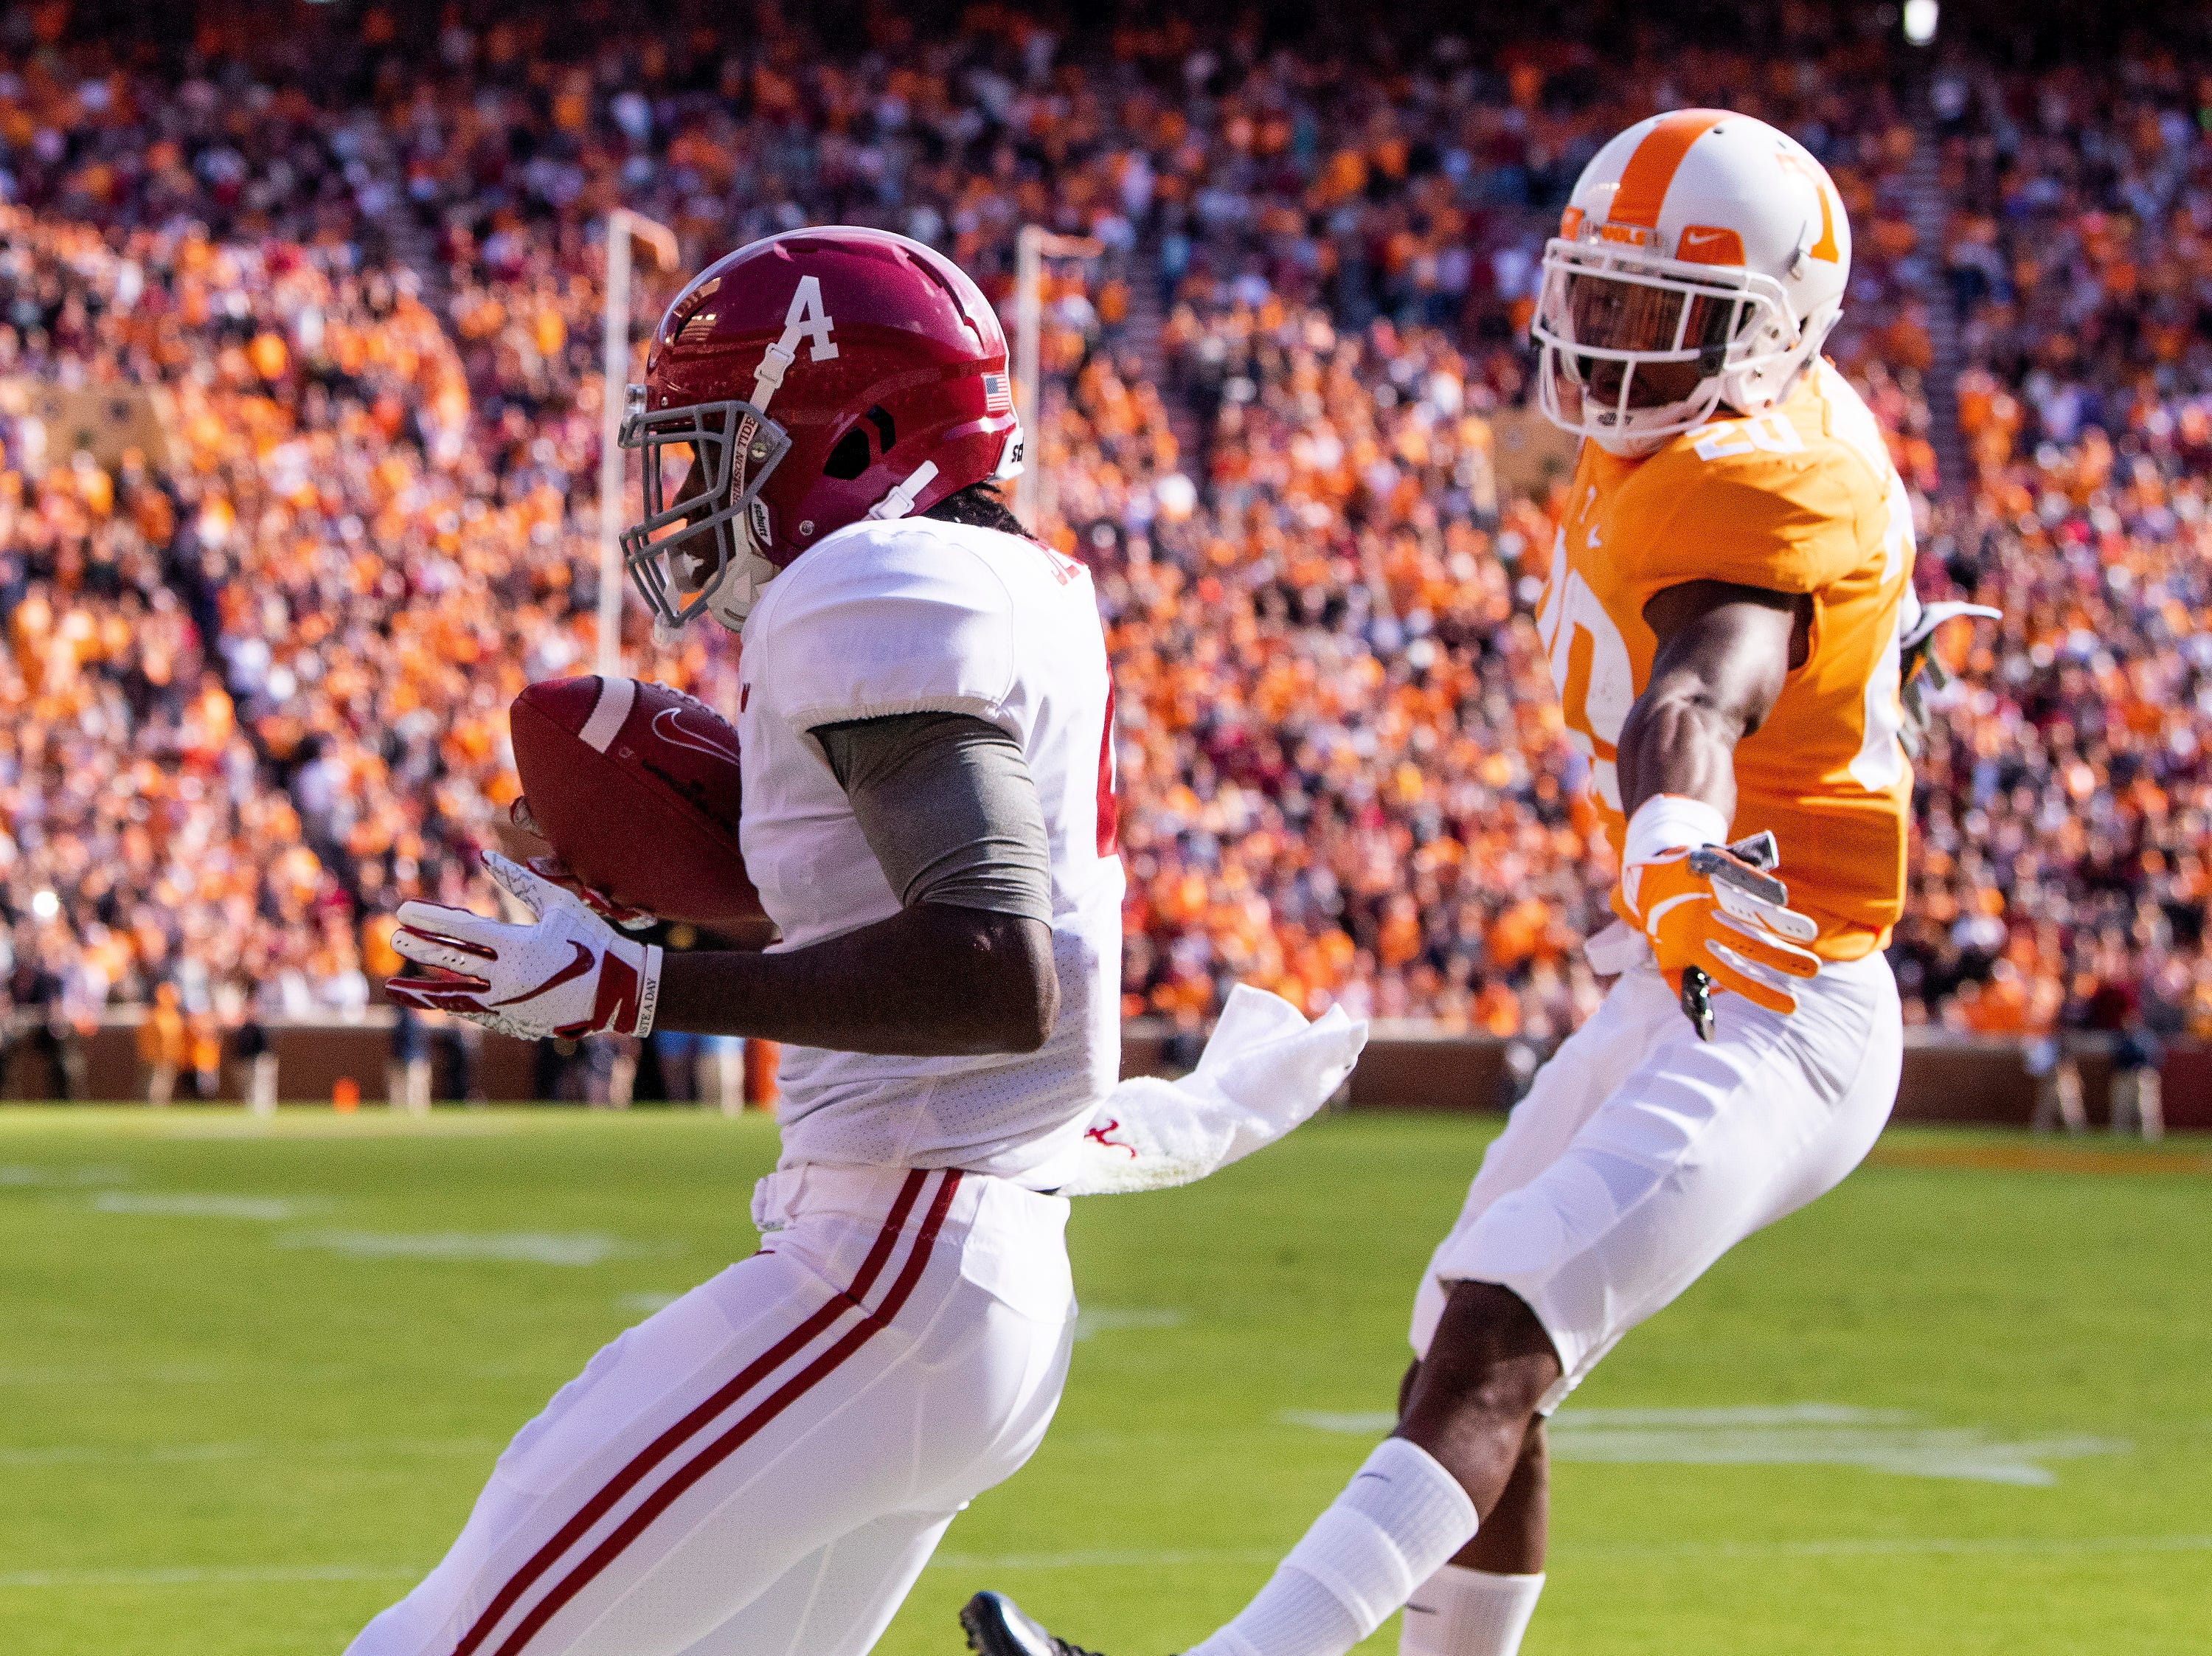 Alabama wide receiver Jerry Jeudy (4) catches a touchdown pass against Tennessee defensive back Bryce Thompson (20) in first half action at Neyland Stadium in Knoxville, Tn., on Saturday October 20, 2018.